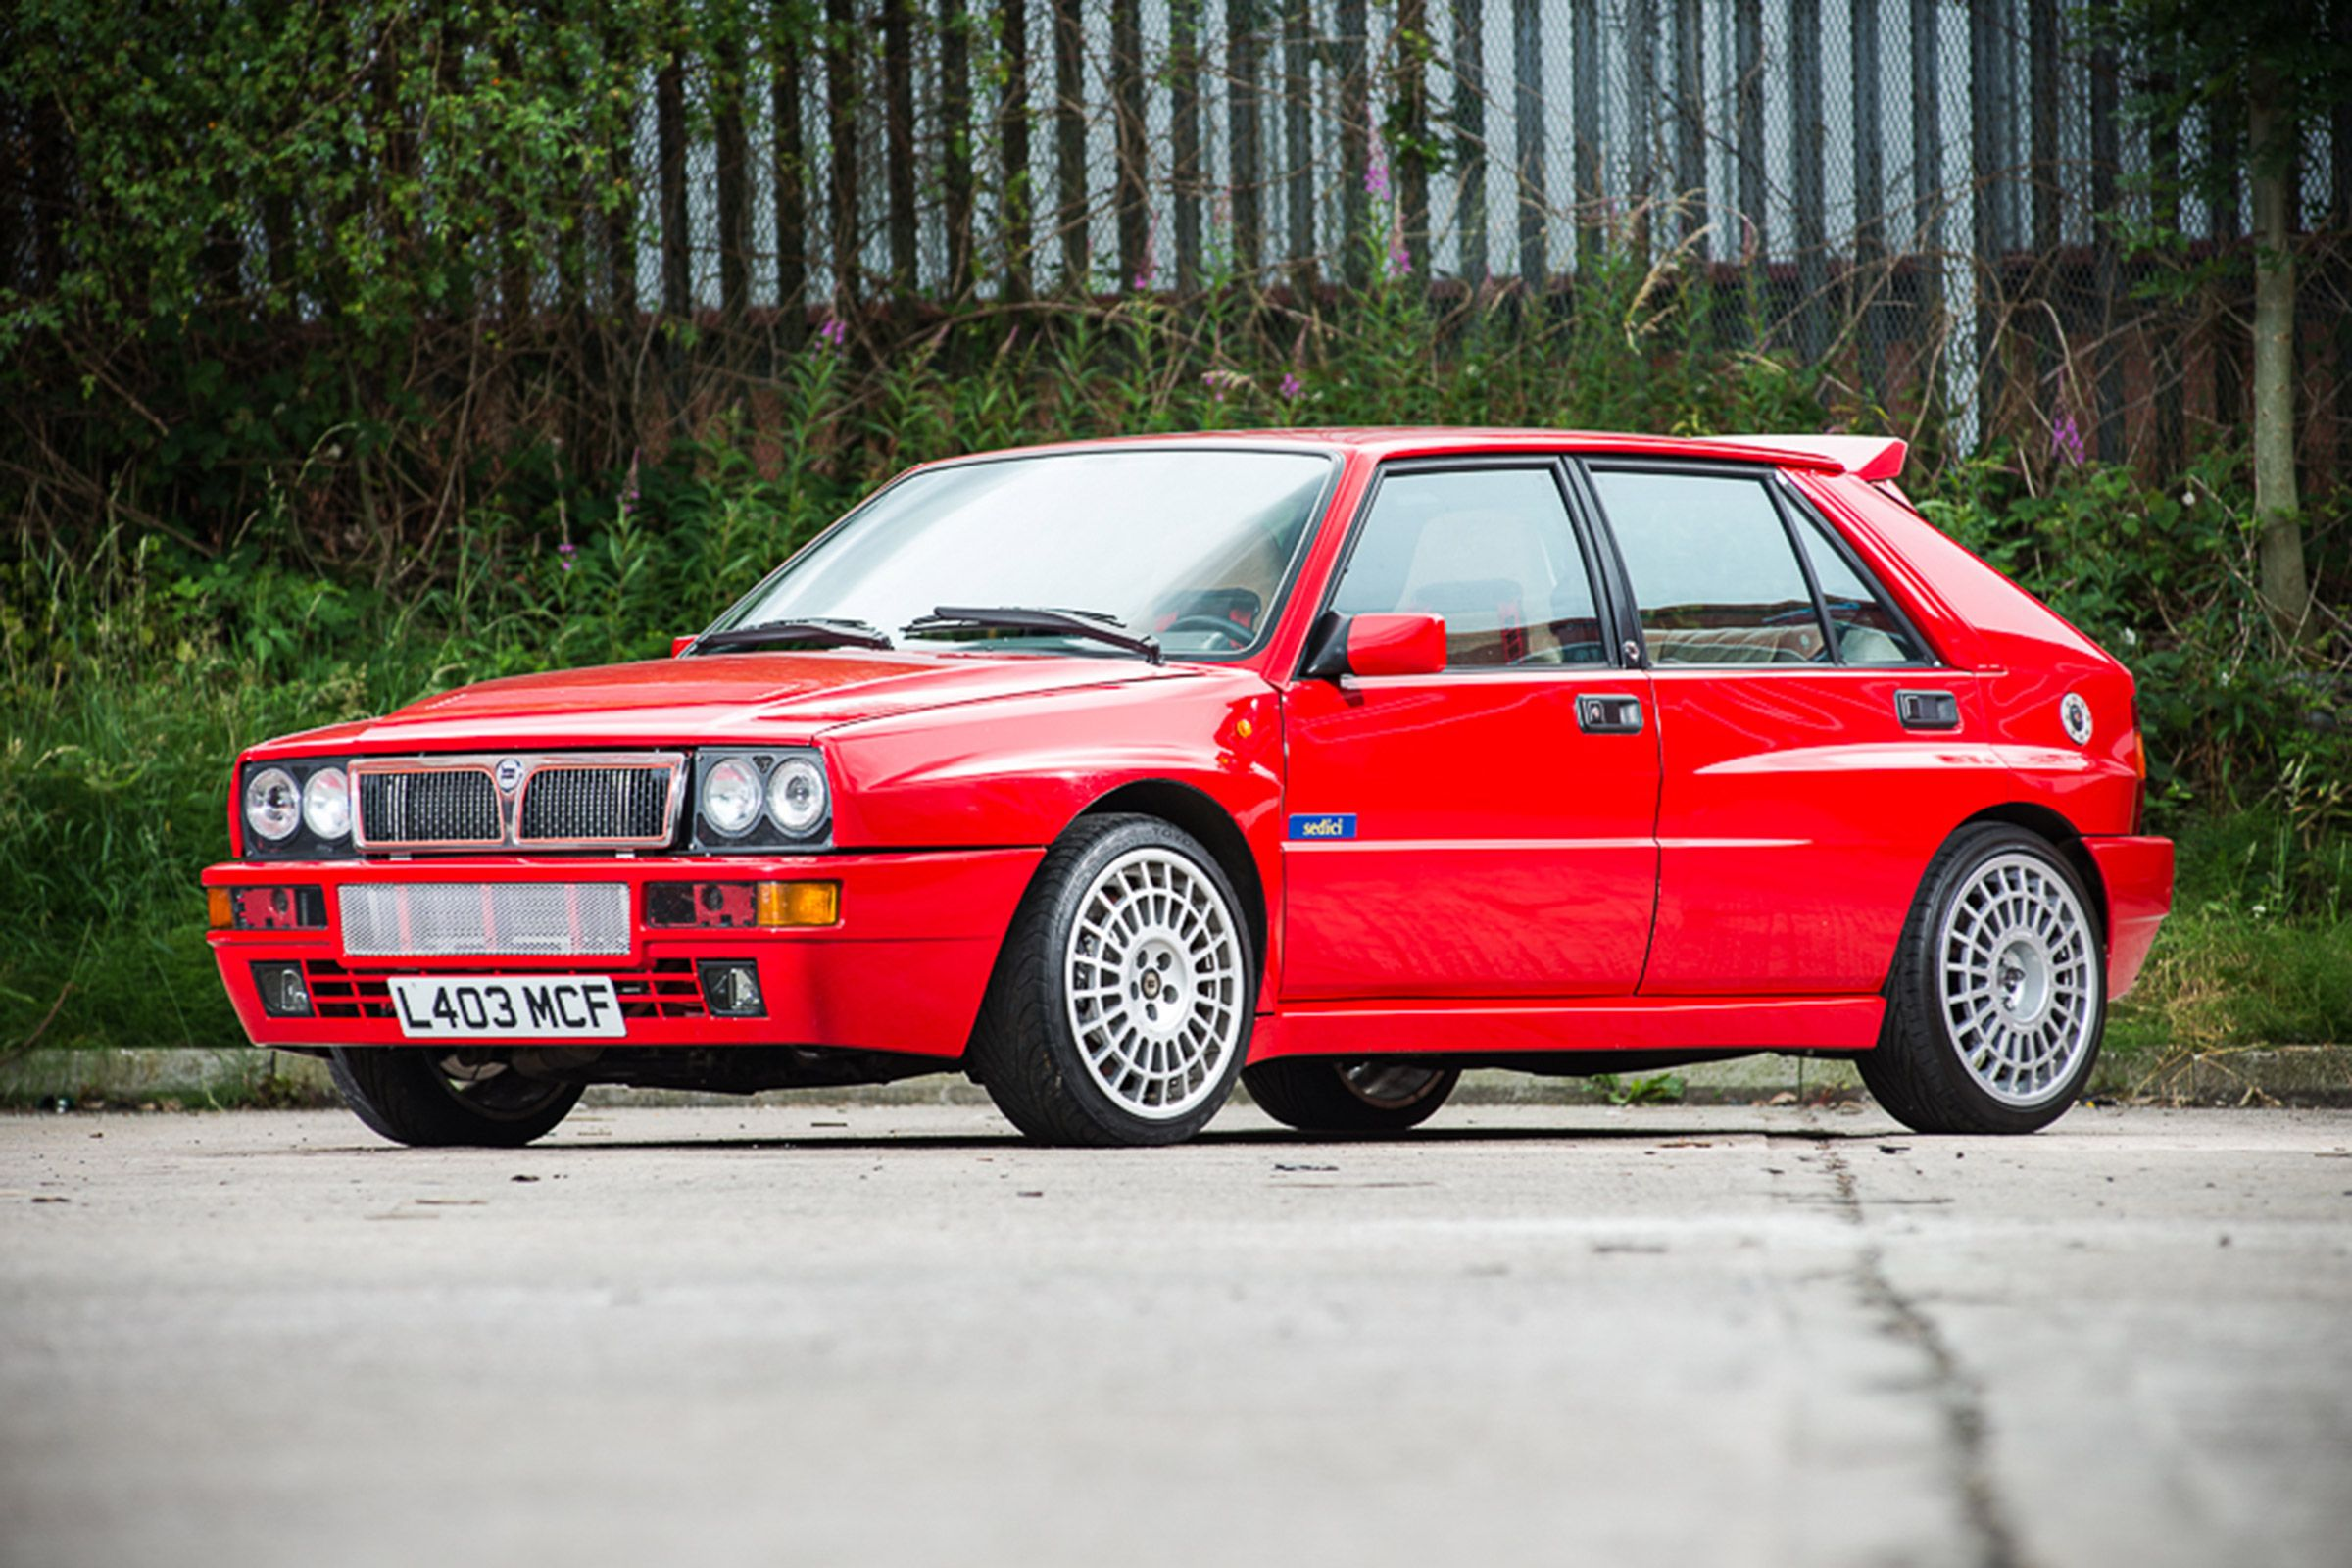 Jay Kay's Lancia Delta Integrale comes up for sale